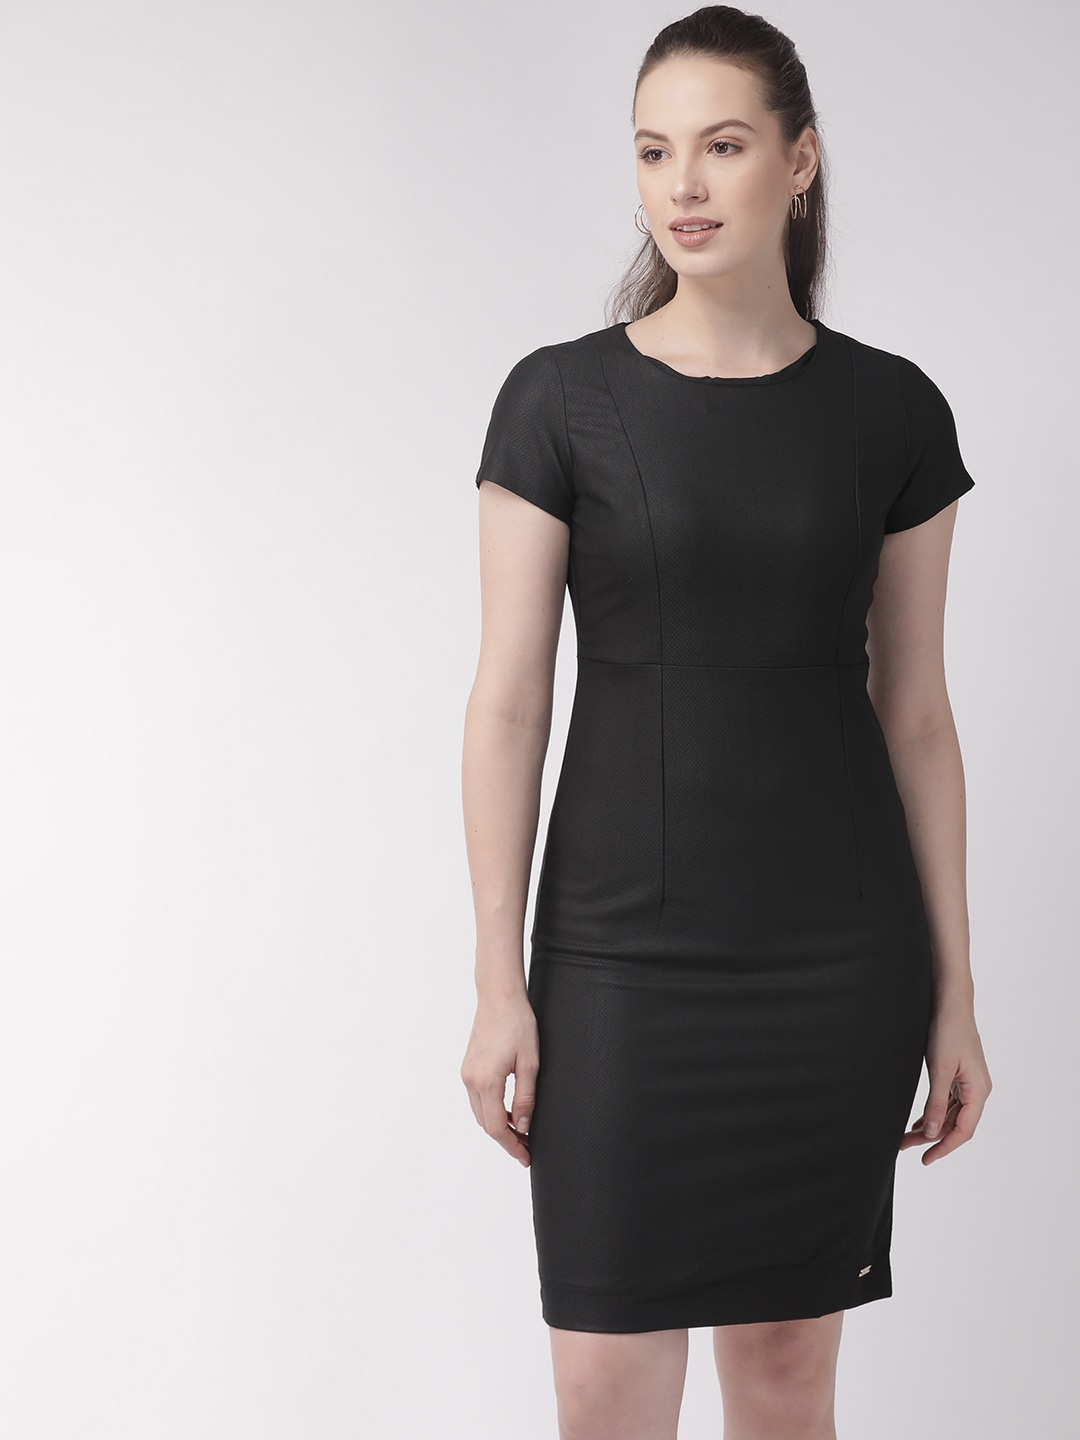 Myntra – Park Avenue Clothing For Women @ 80% off